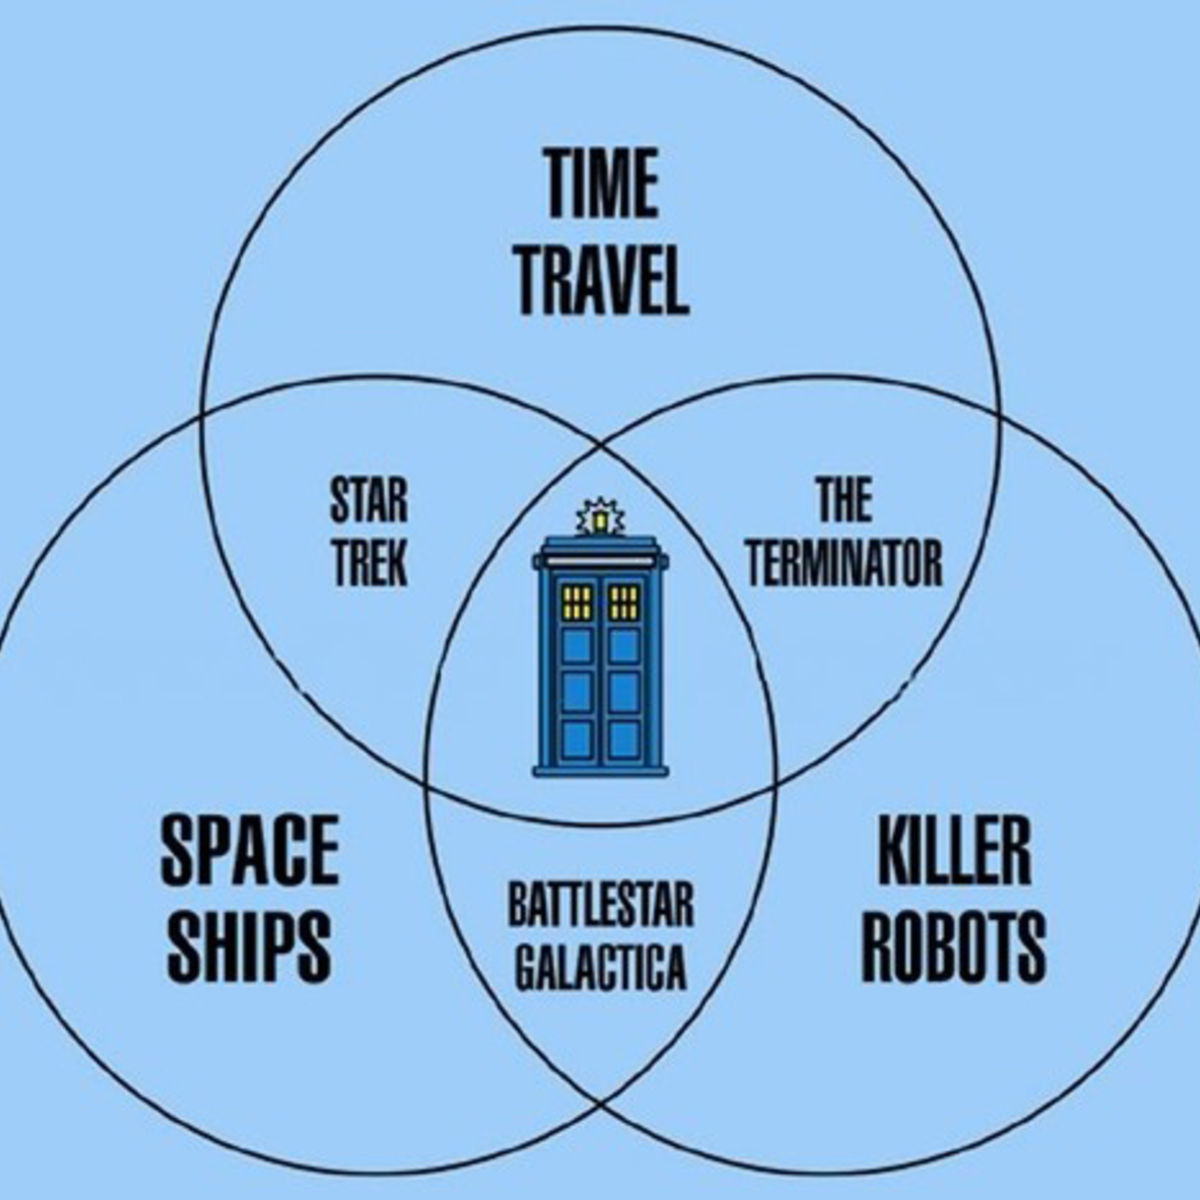 Doctor Who is proven to be the center of all sci-fi (DIAGRAM)